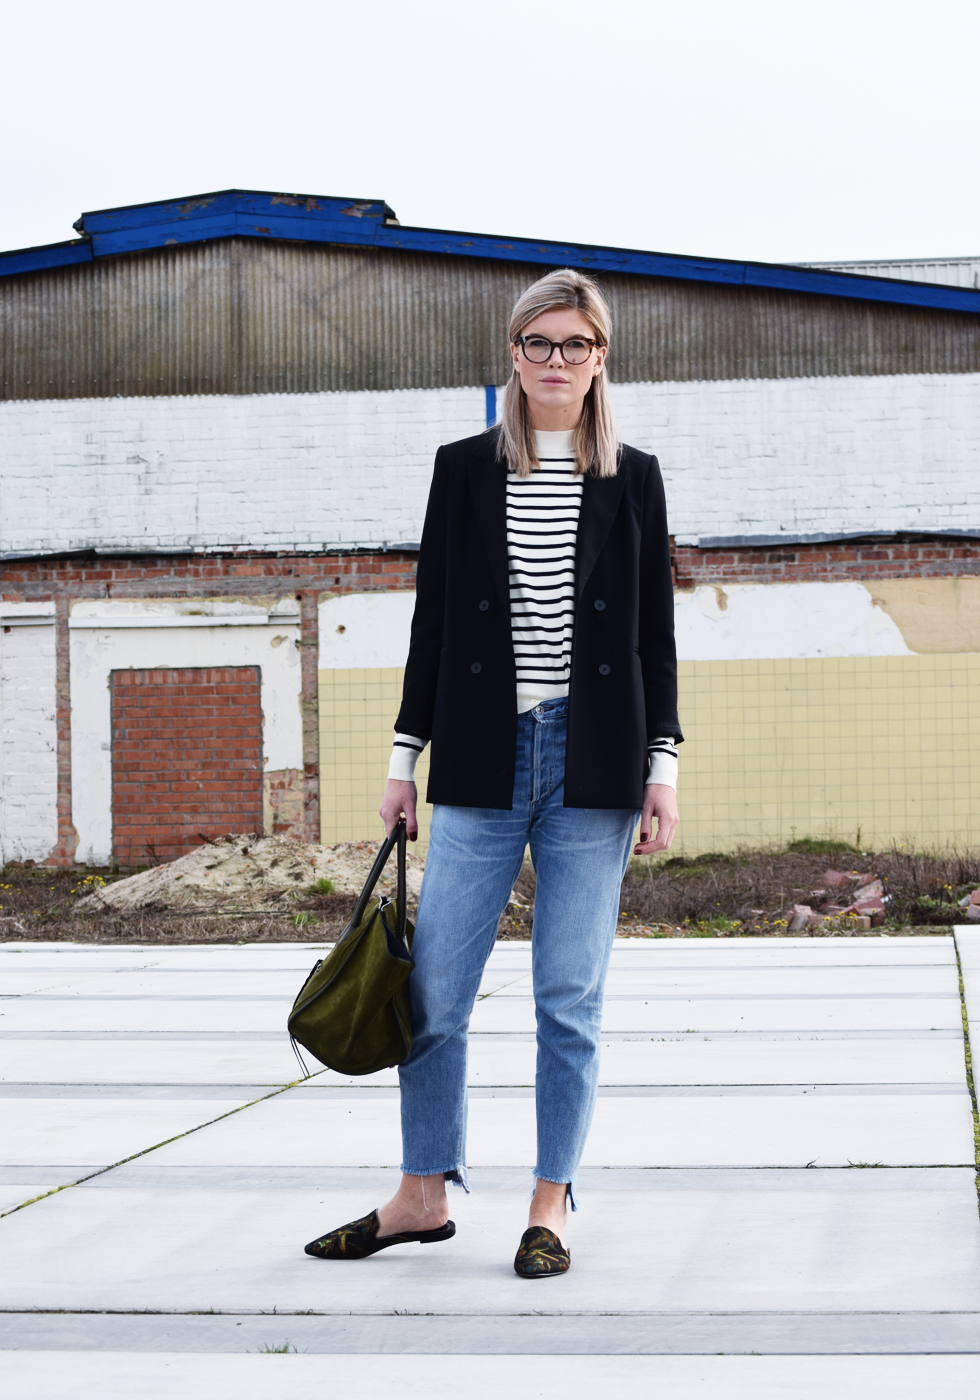 Outfit of the day, MbyM, Zara, Citizens of Humanity, Fendi, Dewolf, Sandro, Céline, ootd, style, fashion, blogger